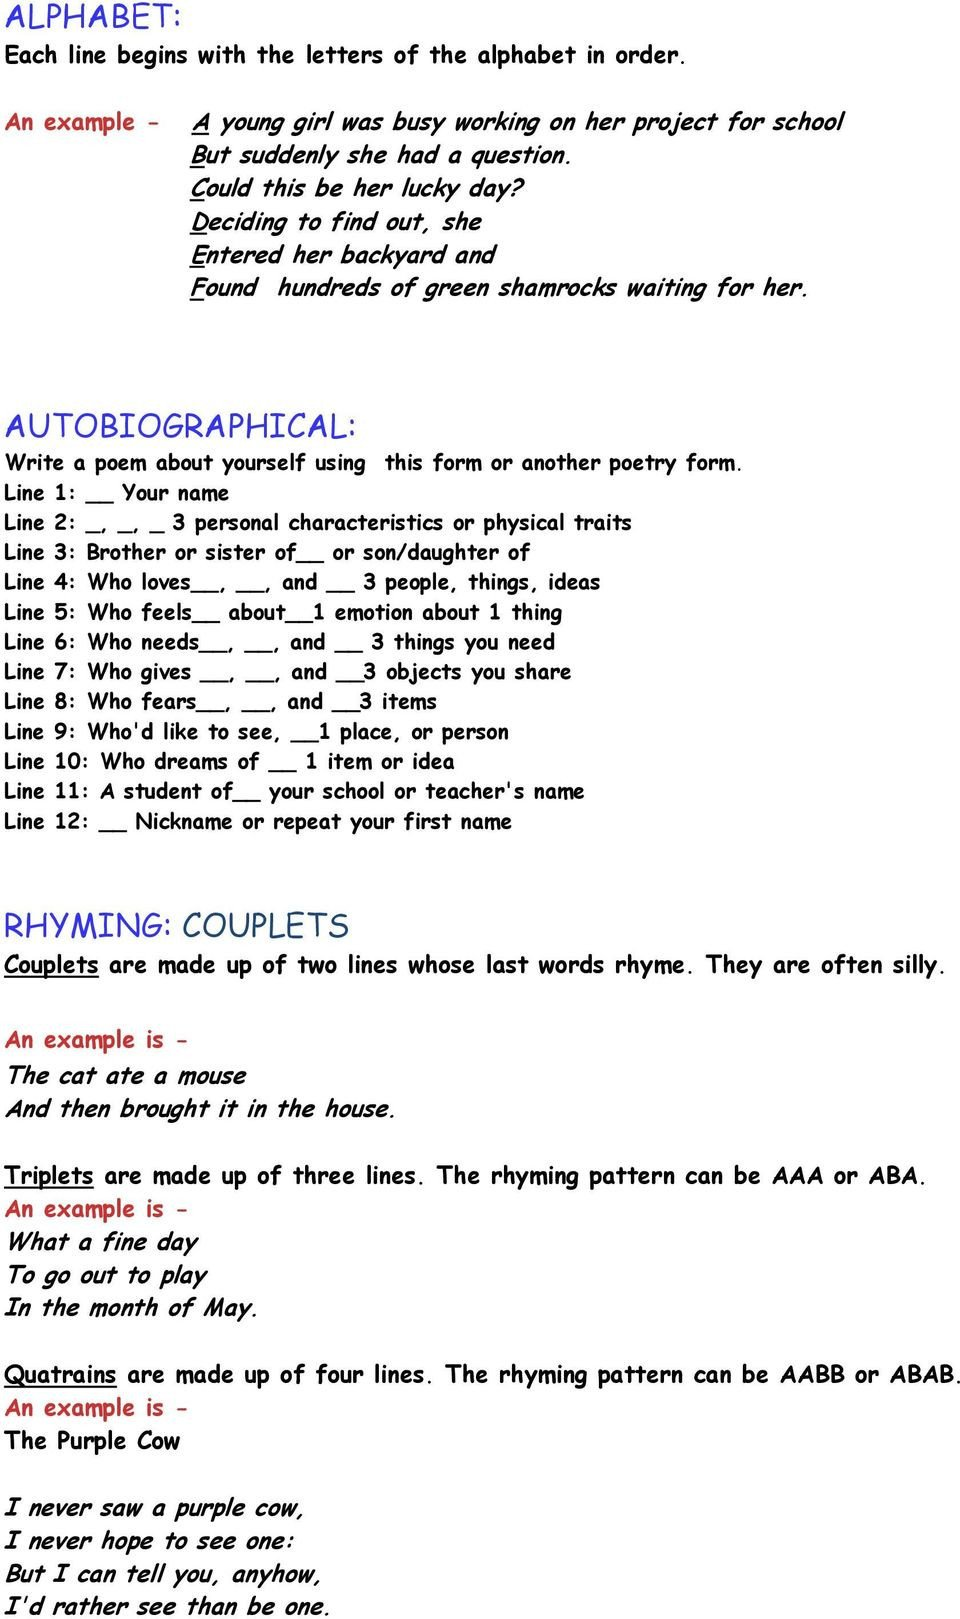 Rhyming Couplets Worksheet Alphabet Autobiographical Rhyming Couplets Pdf Free